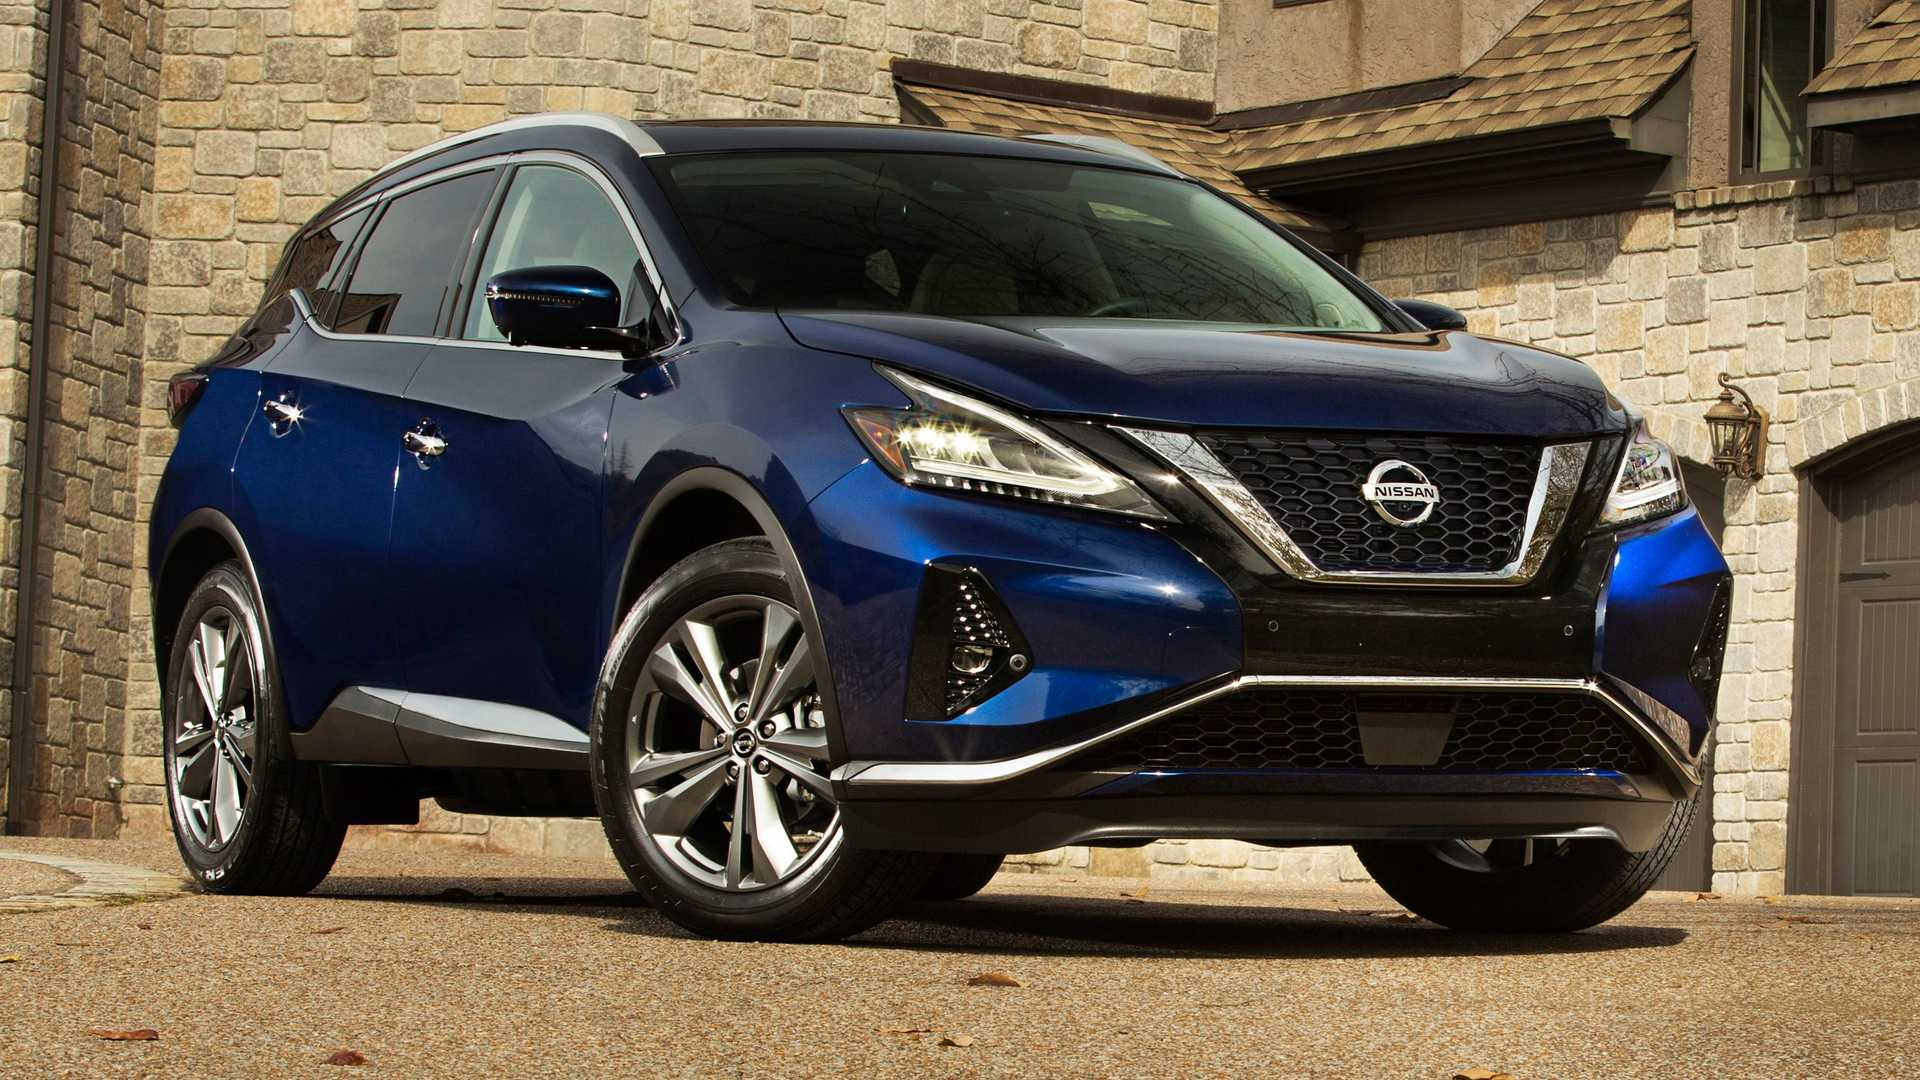 2021 nissan murano gets special edition package, small